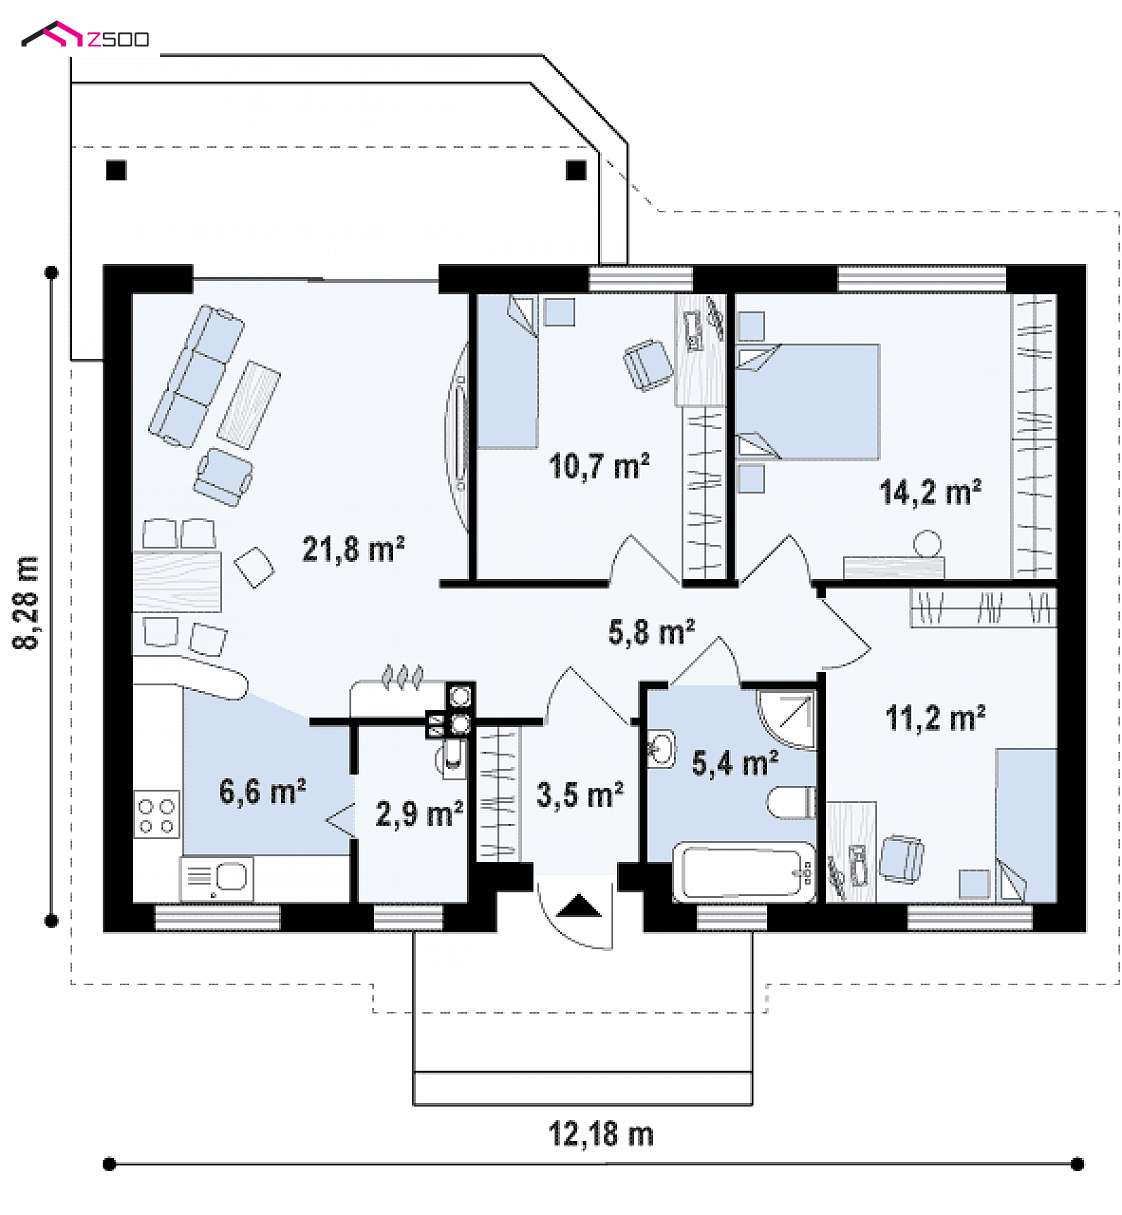 Small but beautiful house inspirations under 100 square meters for 100 sq meters house floor plan